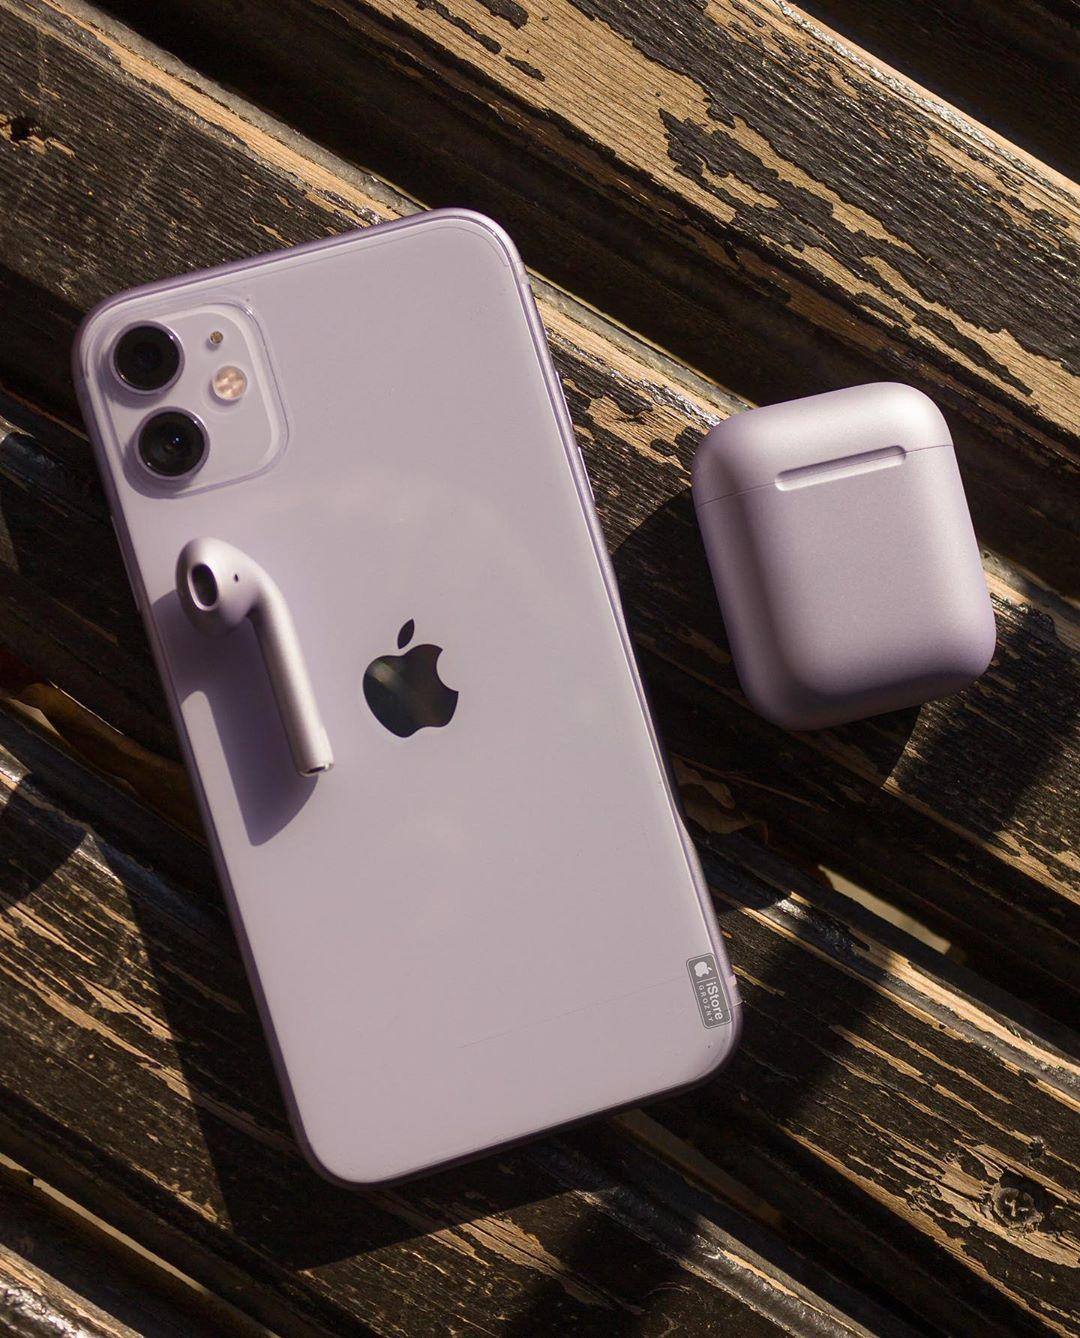 11 Airpods 2 Purple Iphone 11 55 500 Airpods 2 13